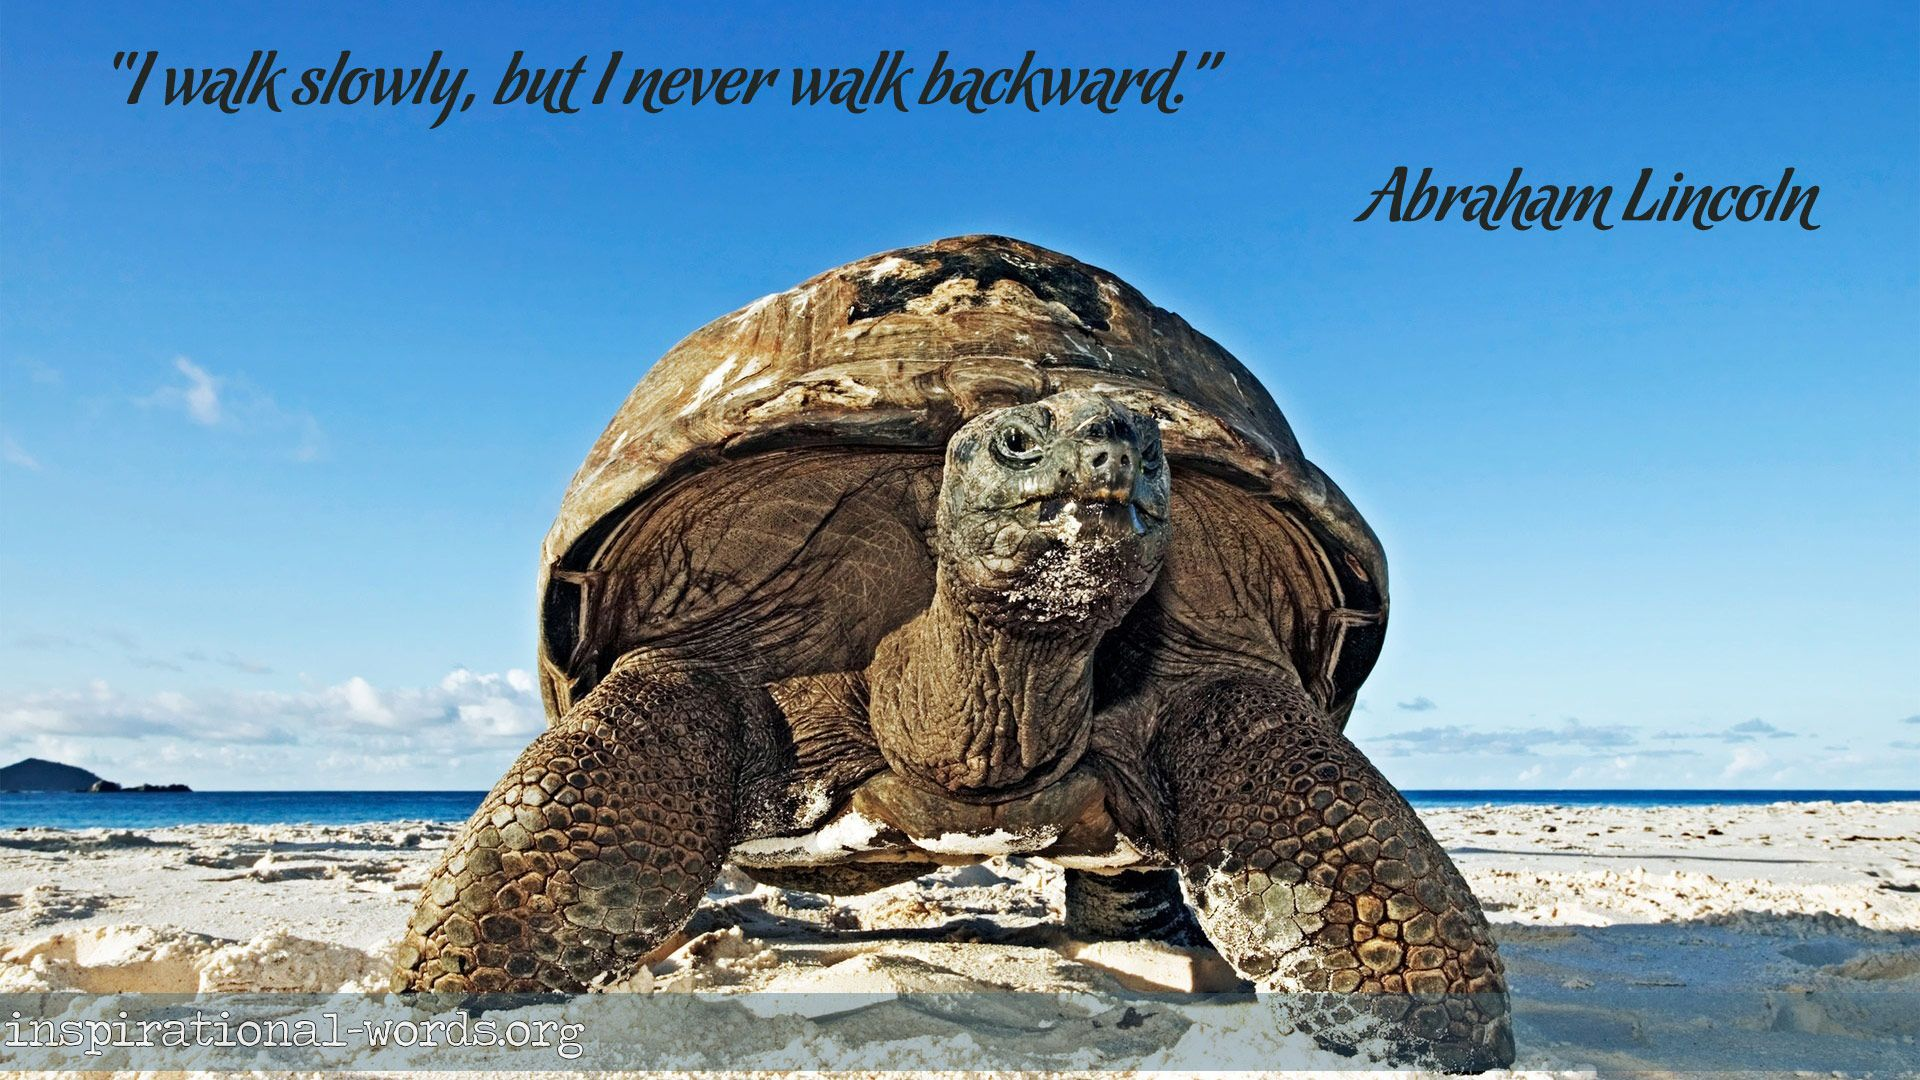 """Inspirational Wallpaper Quote by Abraham Lincoln """"I walk slowly, but I never walk backward."""""""